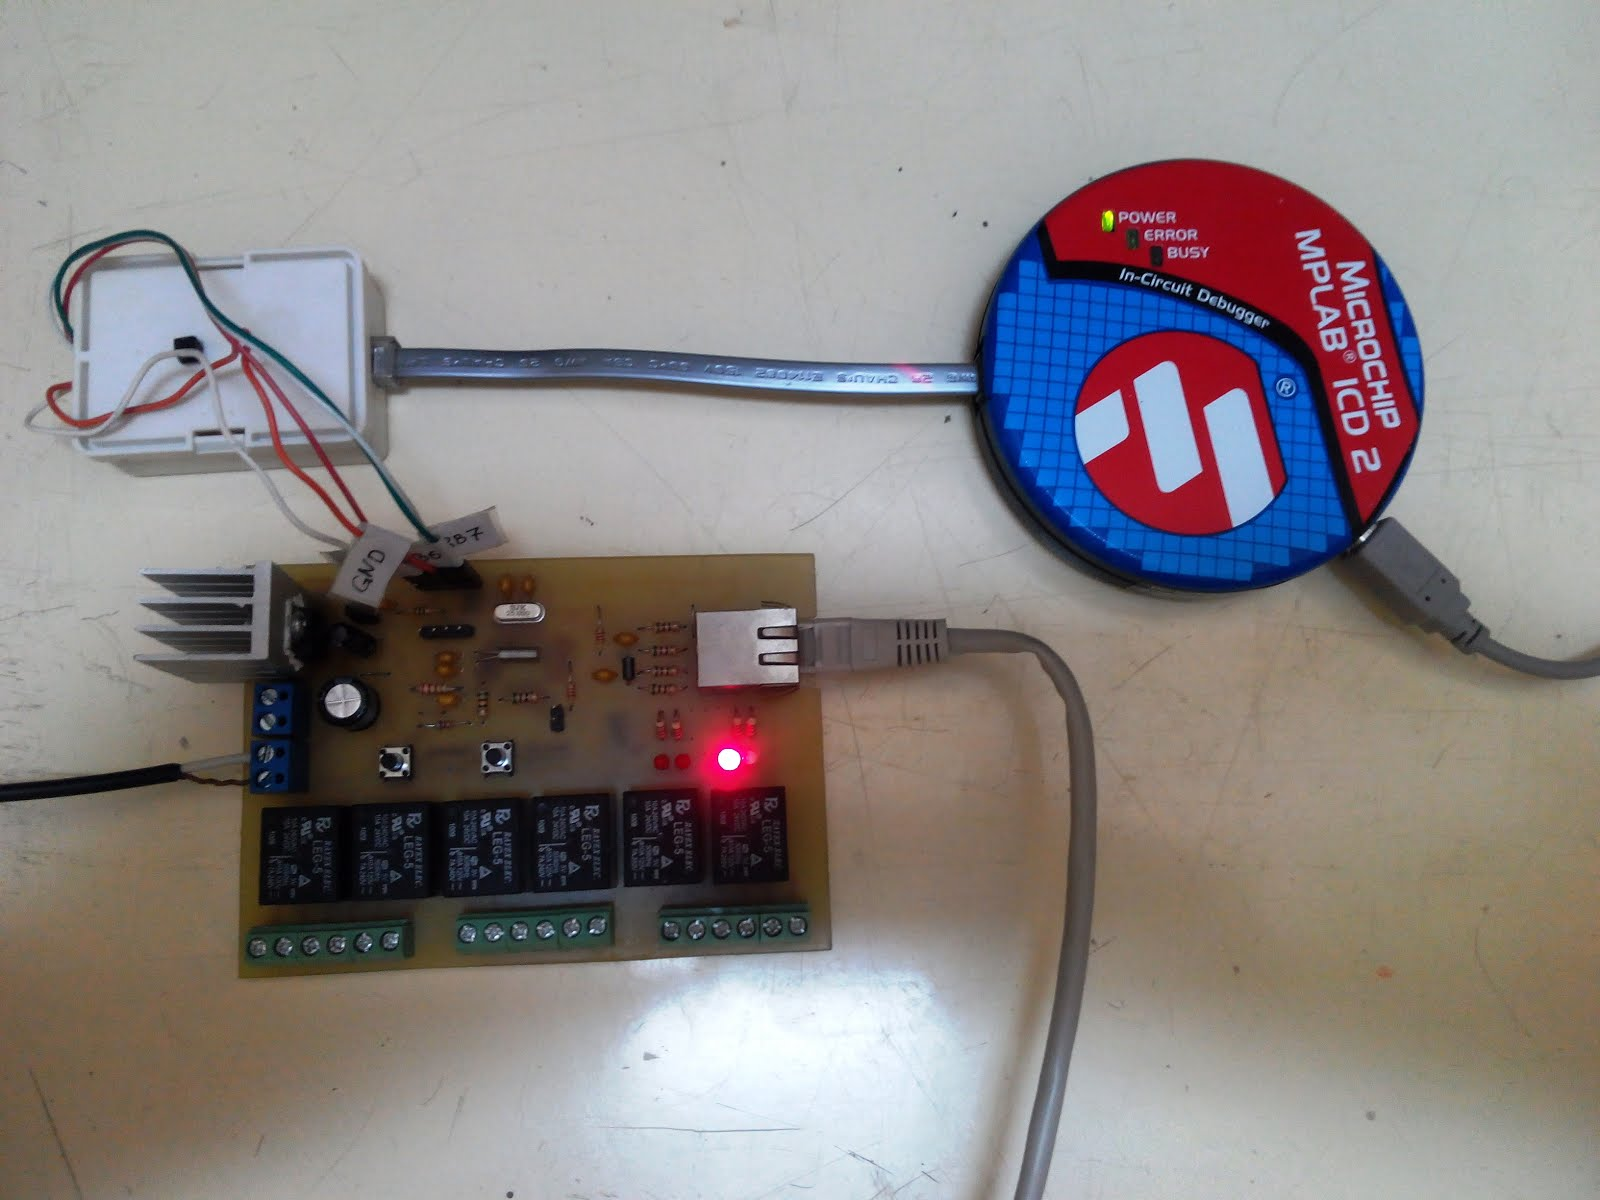 My Blog Remote Relay Control Wia Ethernet With Web Access Switch Network To Make Micro Code For Microcontroller I Use Ansi C Language It Is Very Common Standard Of Programs Created Can Be Compiled